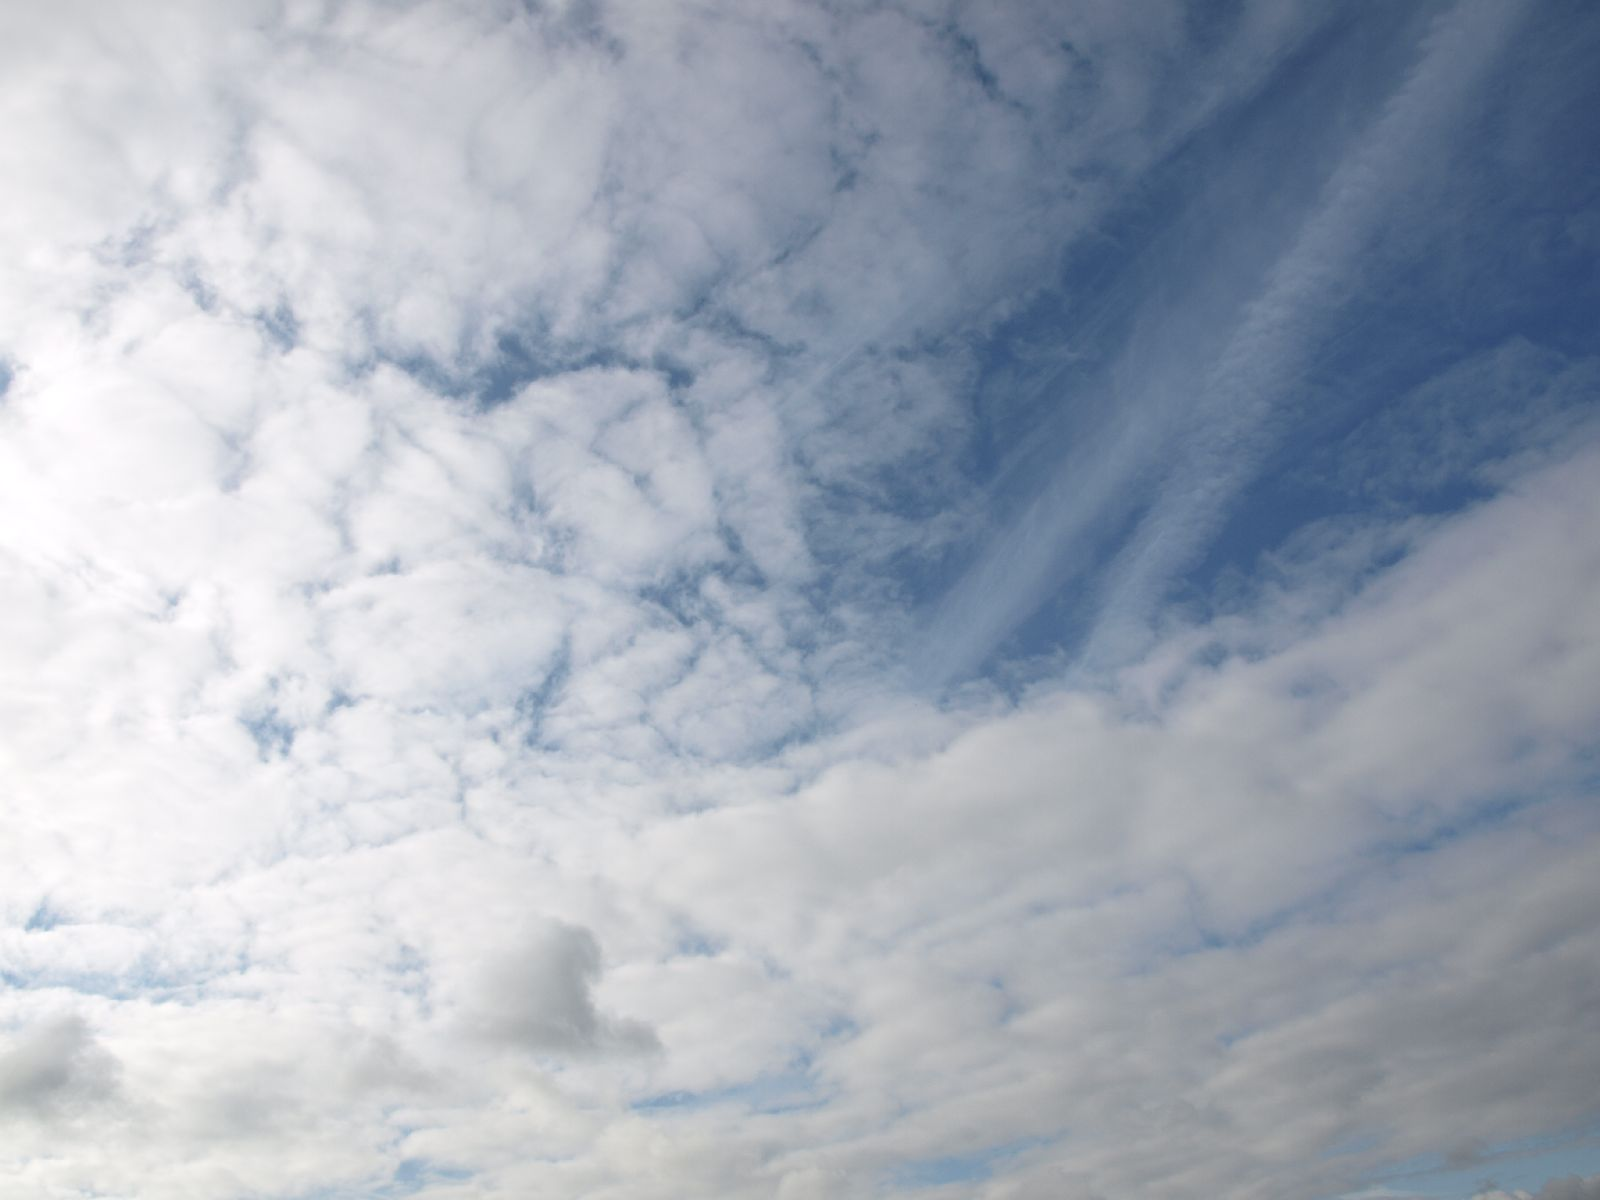 Sky_Clouds_Photo_Texture_A_P5022099